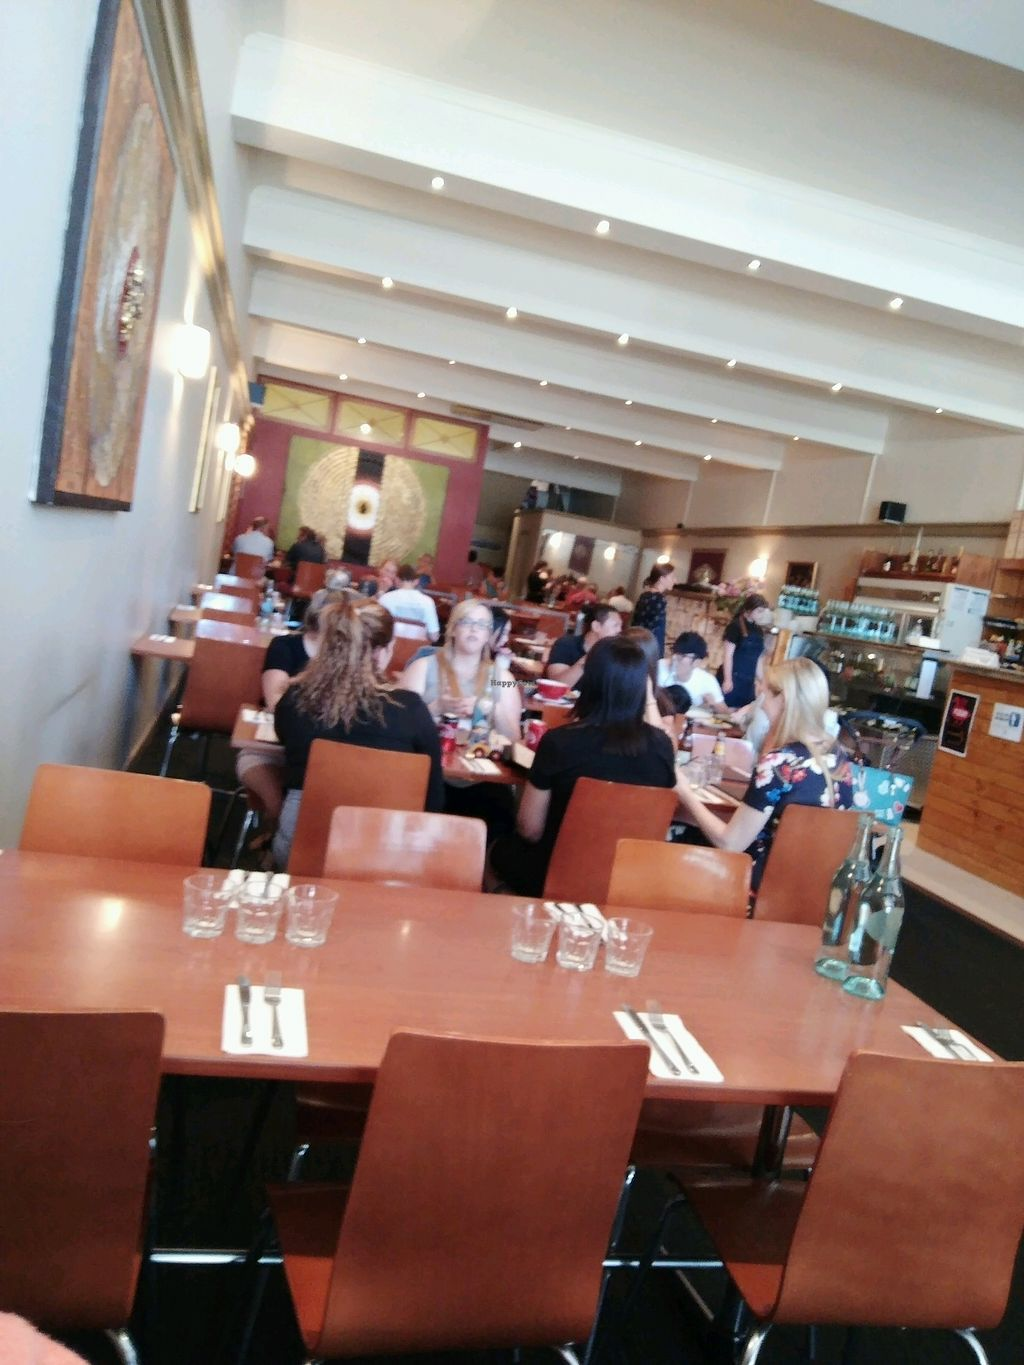 """Photo of Brown Grain Thai Restaurant  by <a href=""""/members/profile/Aloo"""">Aloo</a> <br/>plenty of seating <br/> February 17, 2018  - <a href='/contact/abuse/image/92991/360266'>Report</a>"""